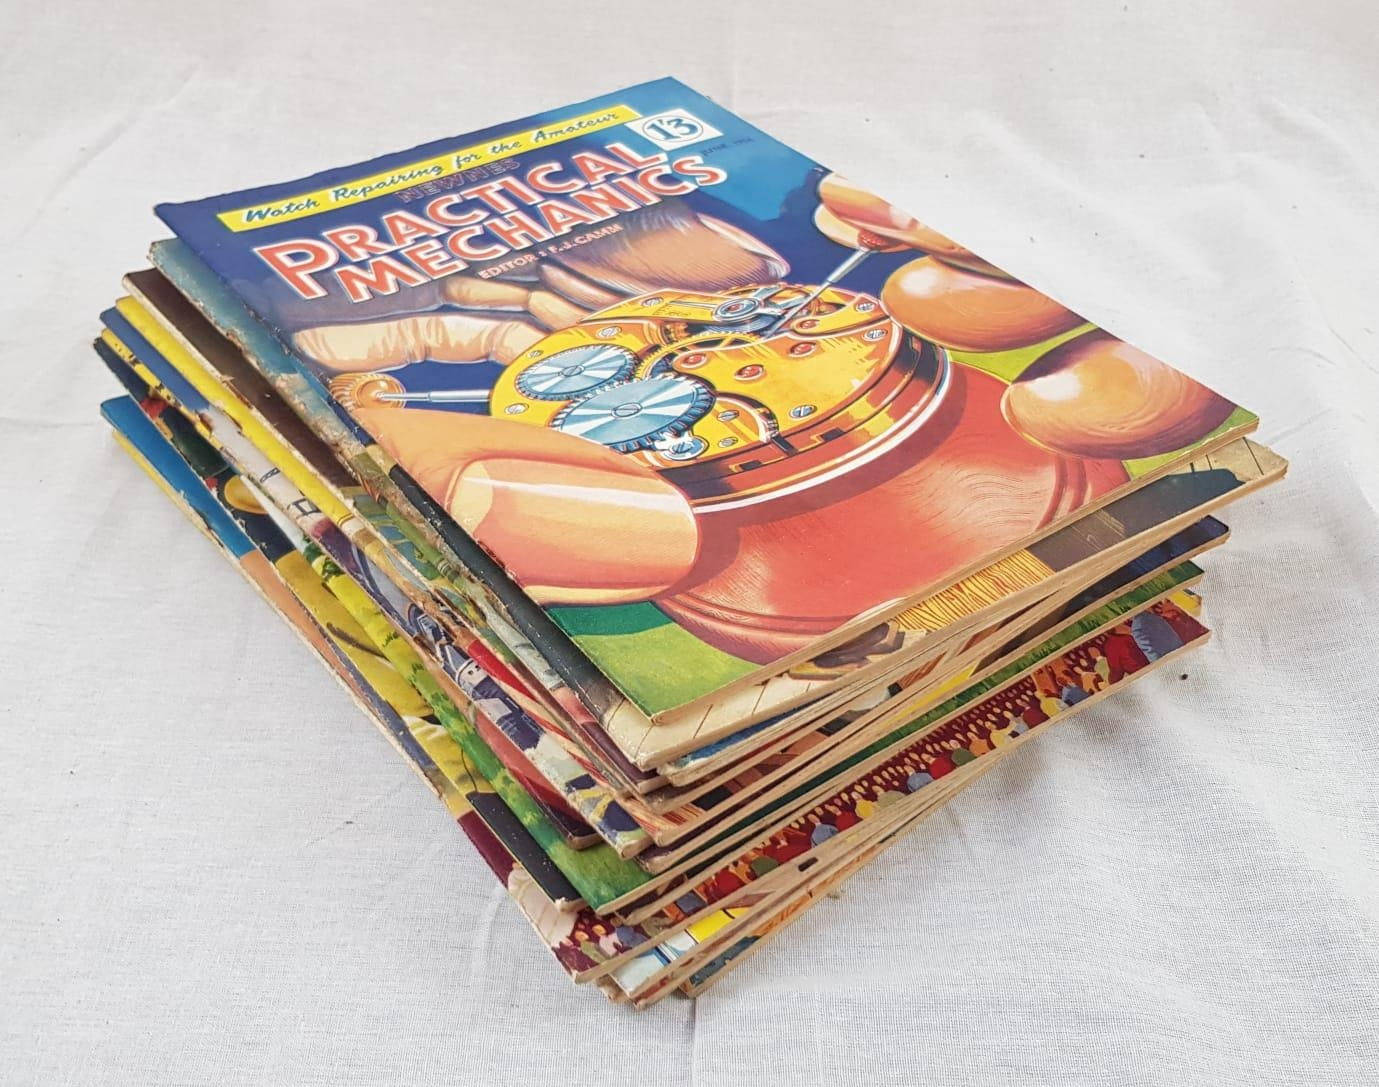 21 Vintage copies of Practical Mechanics magazine from 1954 to 1956. Including the classics: Watch - Image 2 of 2